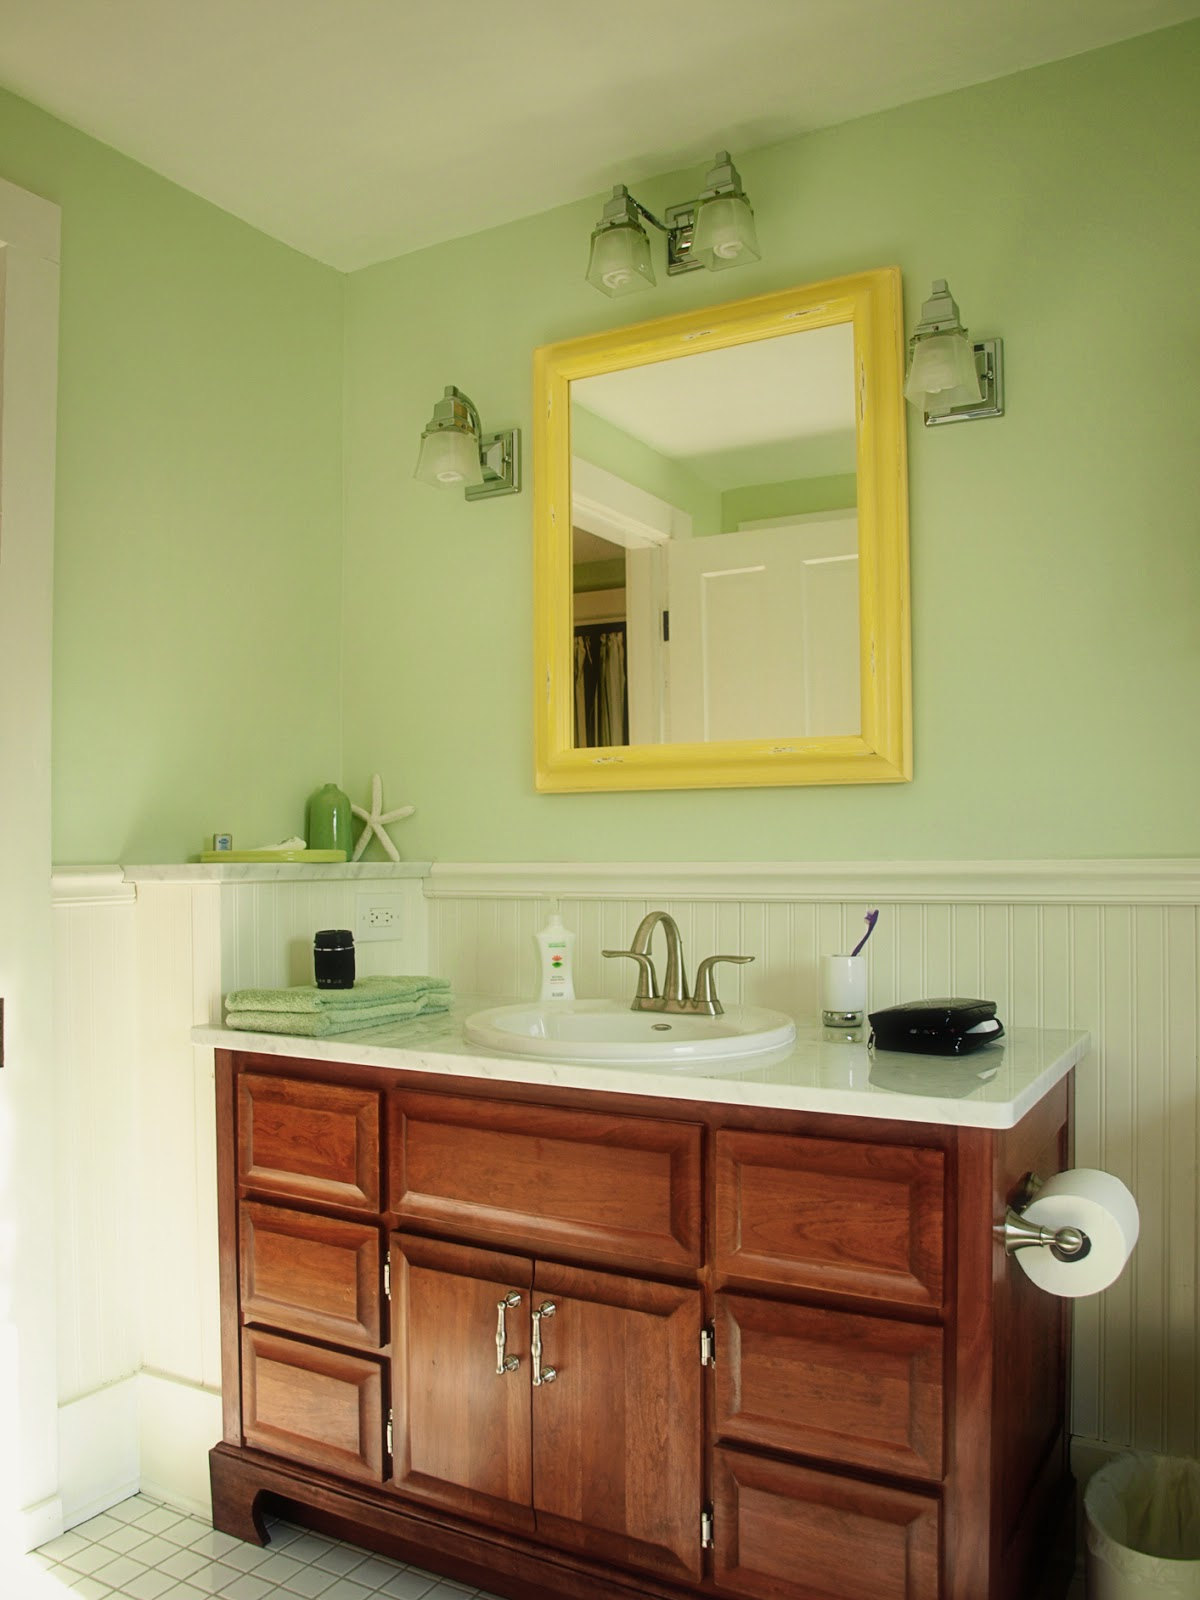 Farmhouse bathroom ideas bathroom designs Bathroom decor ideas images